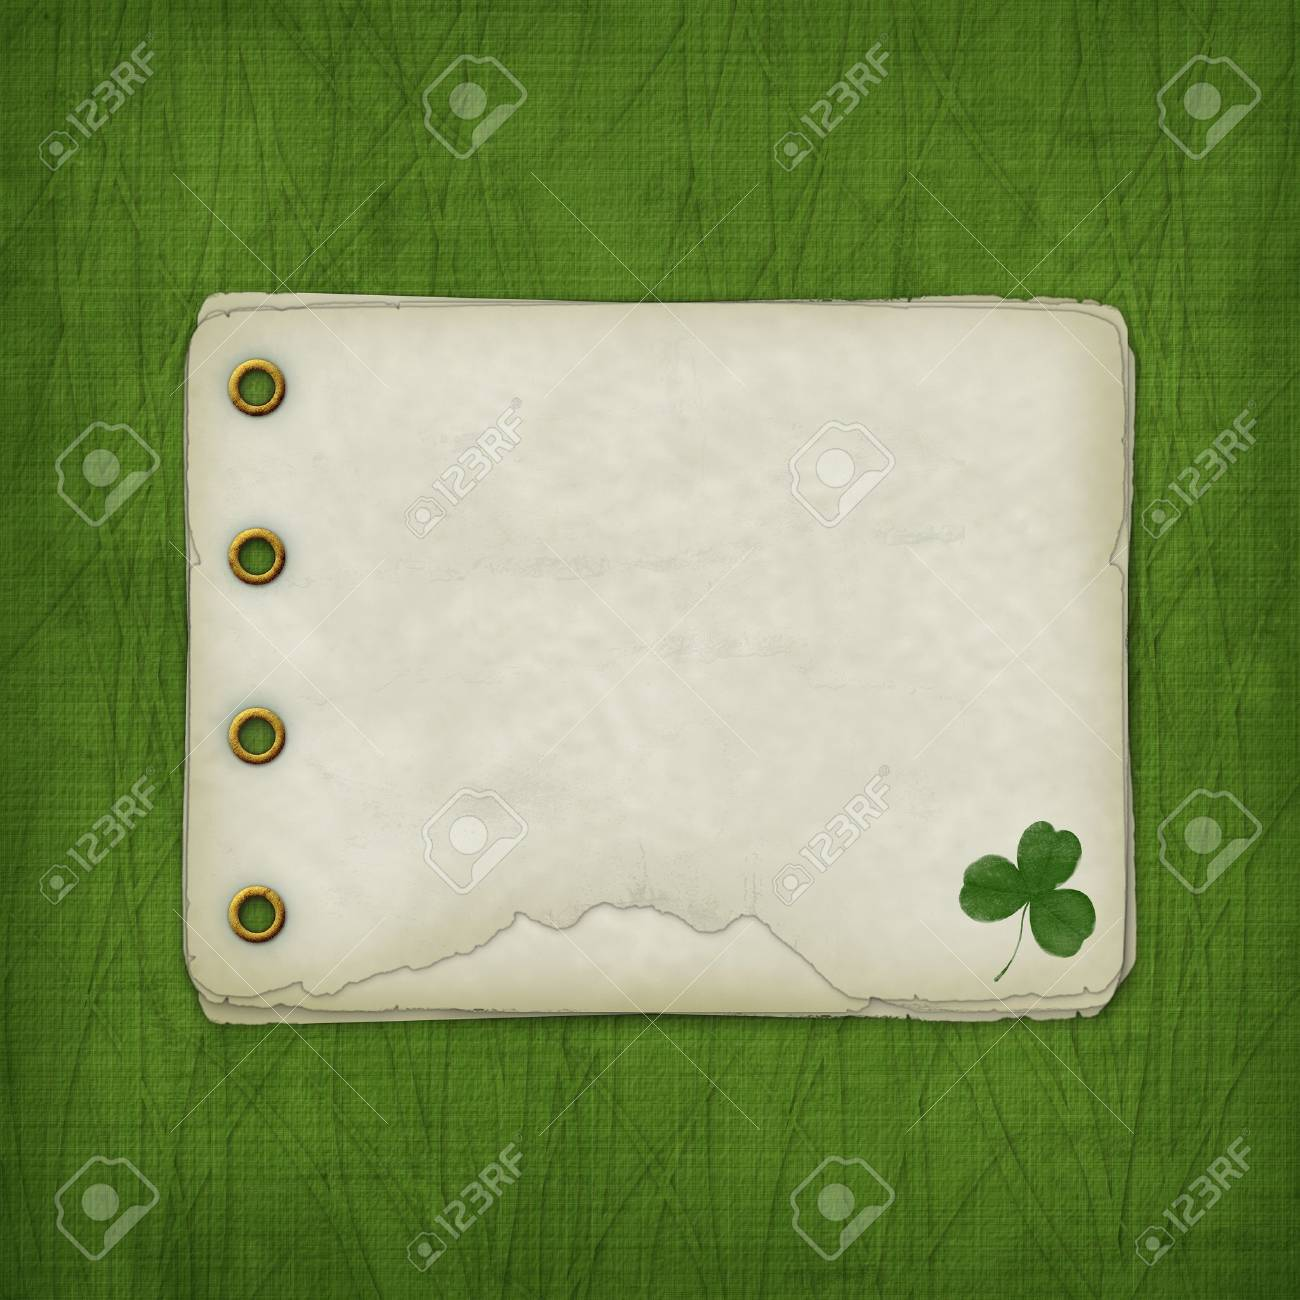 Design album for St. Patrick's Day with leaf clover Stock Photo - 4318505